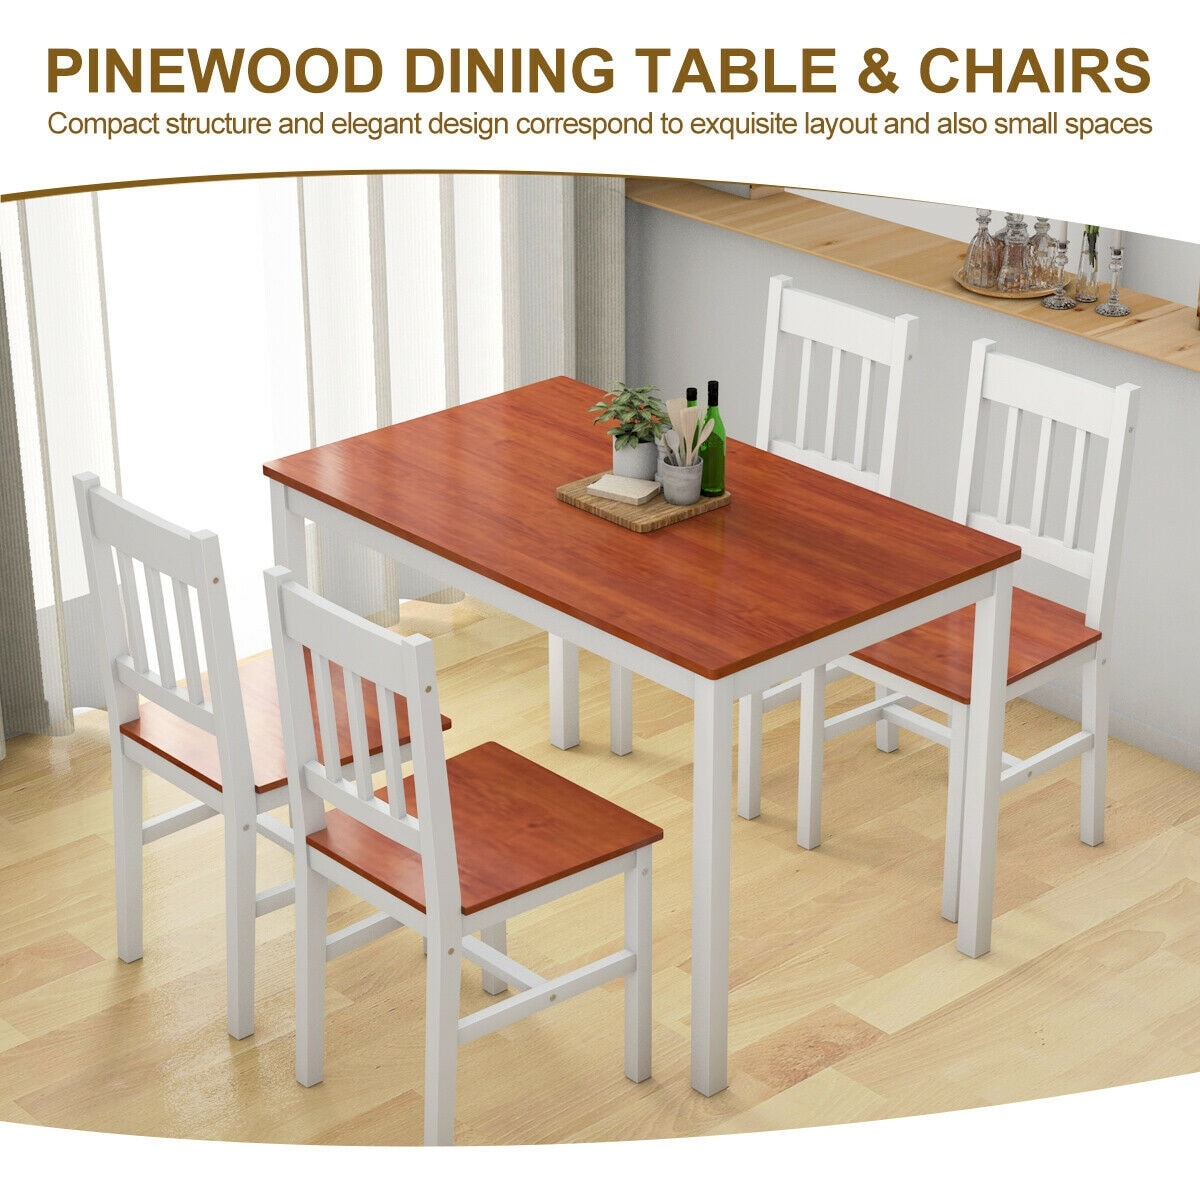 Costway 5PCS Pine Wood Dinette Dining Set Table and 4 Chairs Home Kitchen  Furniture - White and Brown